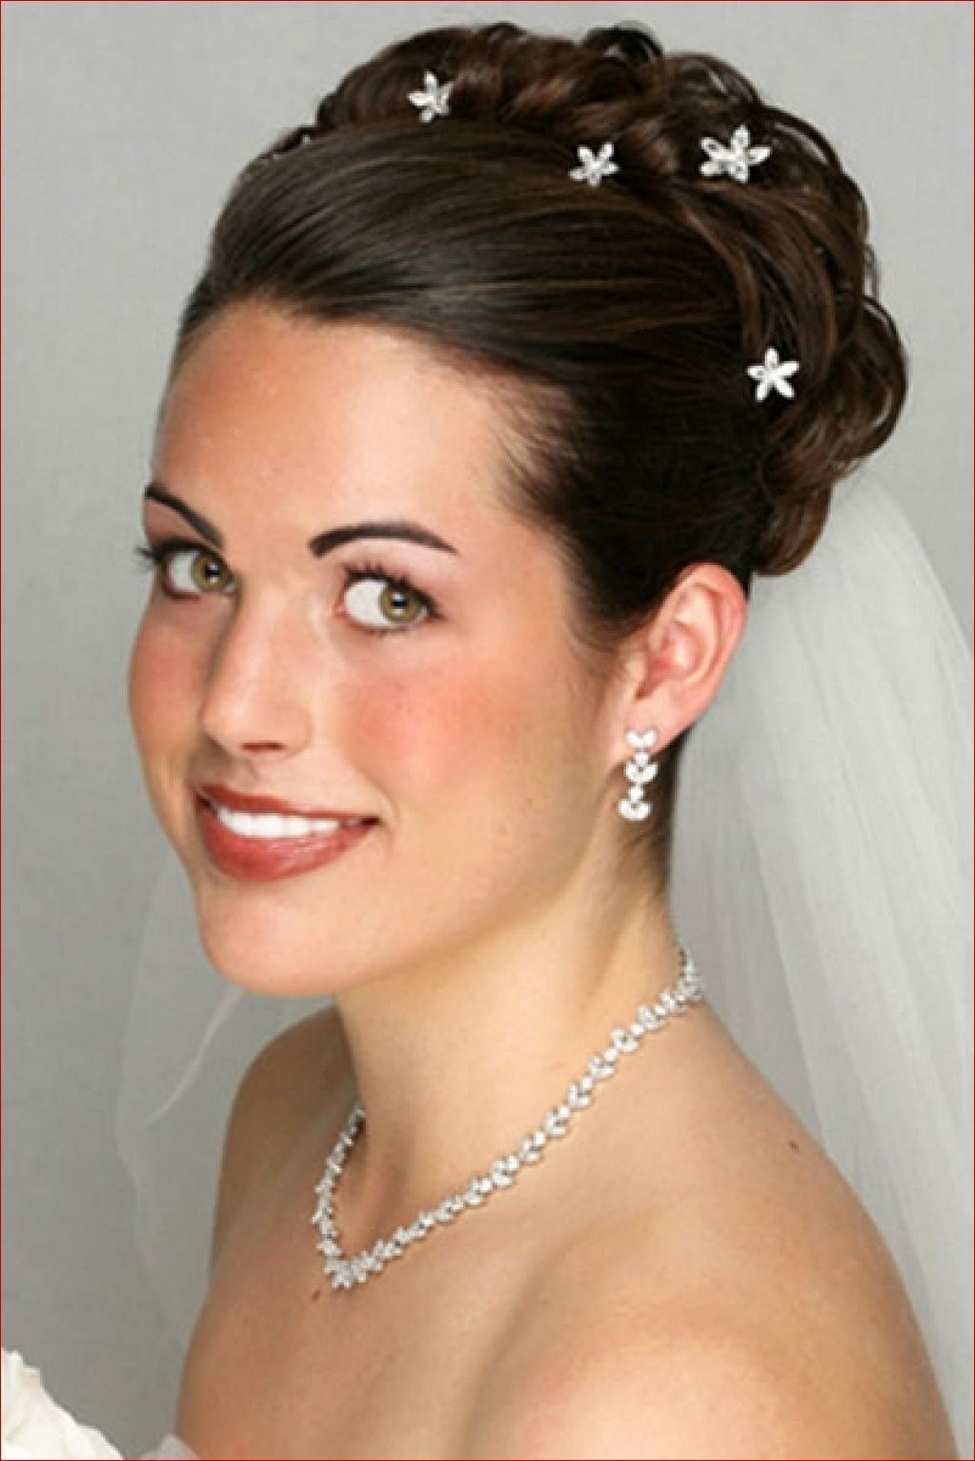 Medium Length Updo Hairstyles For Weddings | Inside Wedding Updo Hairstyles For Shoulder Length Hair (View 4 of 15)